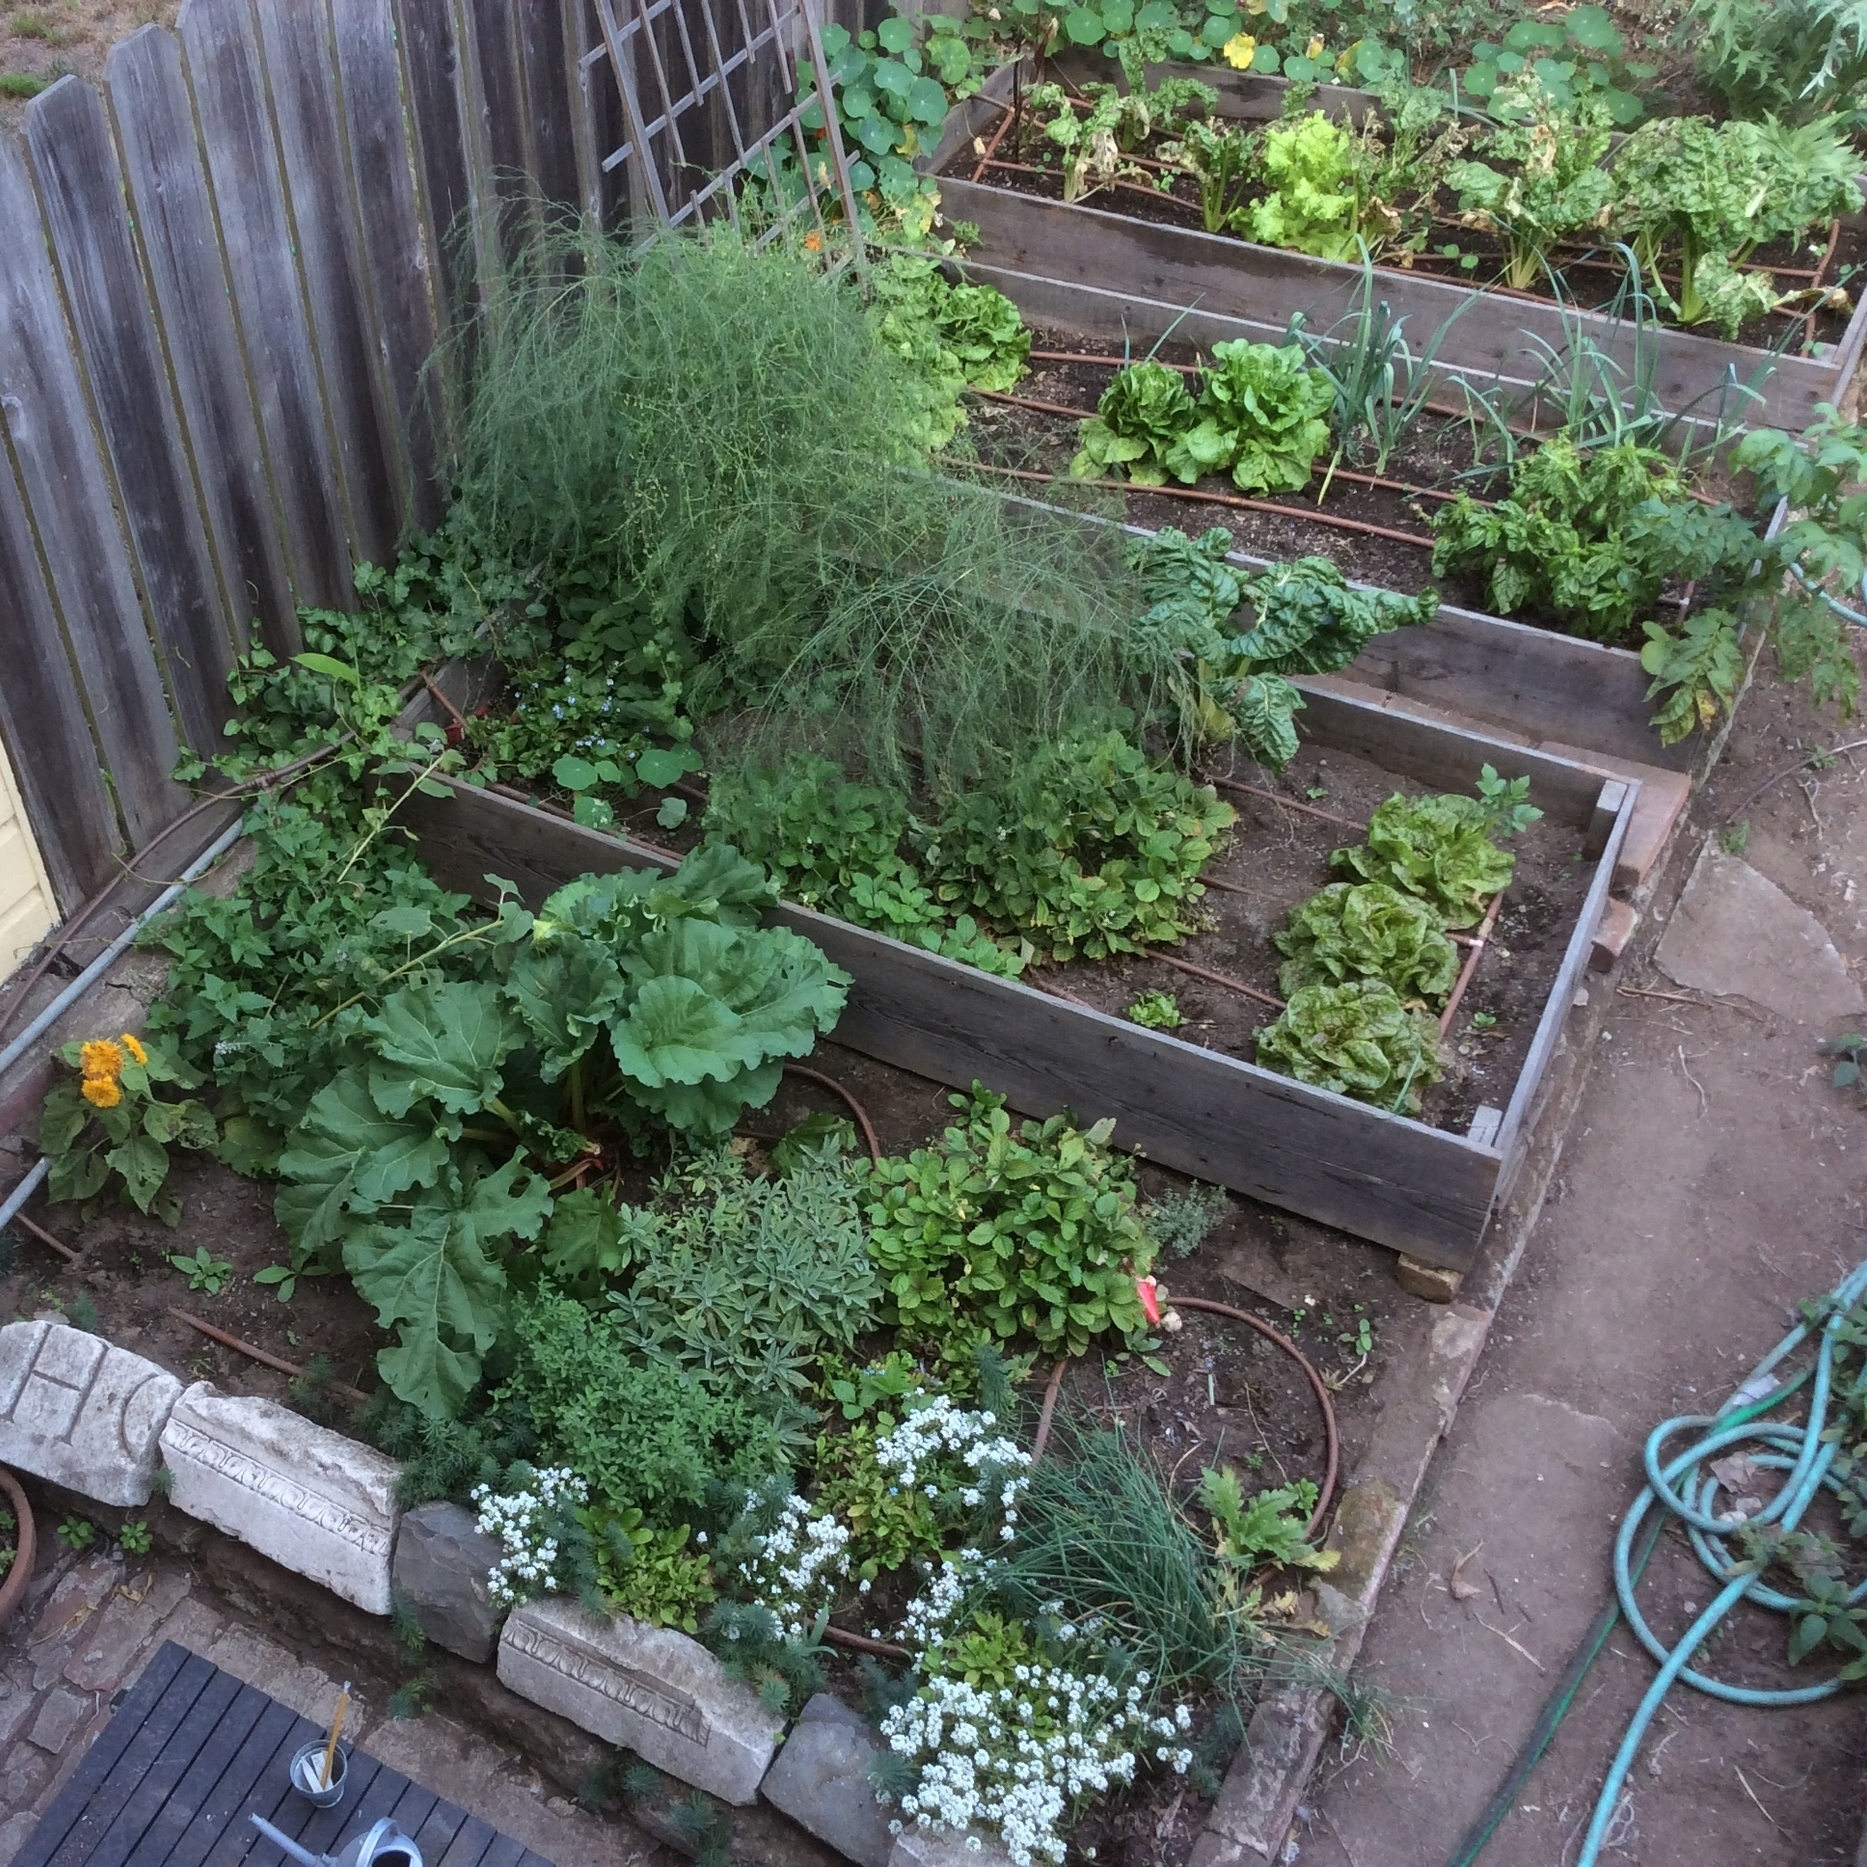 September 2015 - When the garden was looking better.